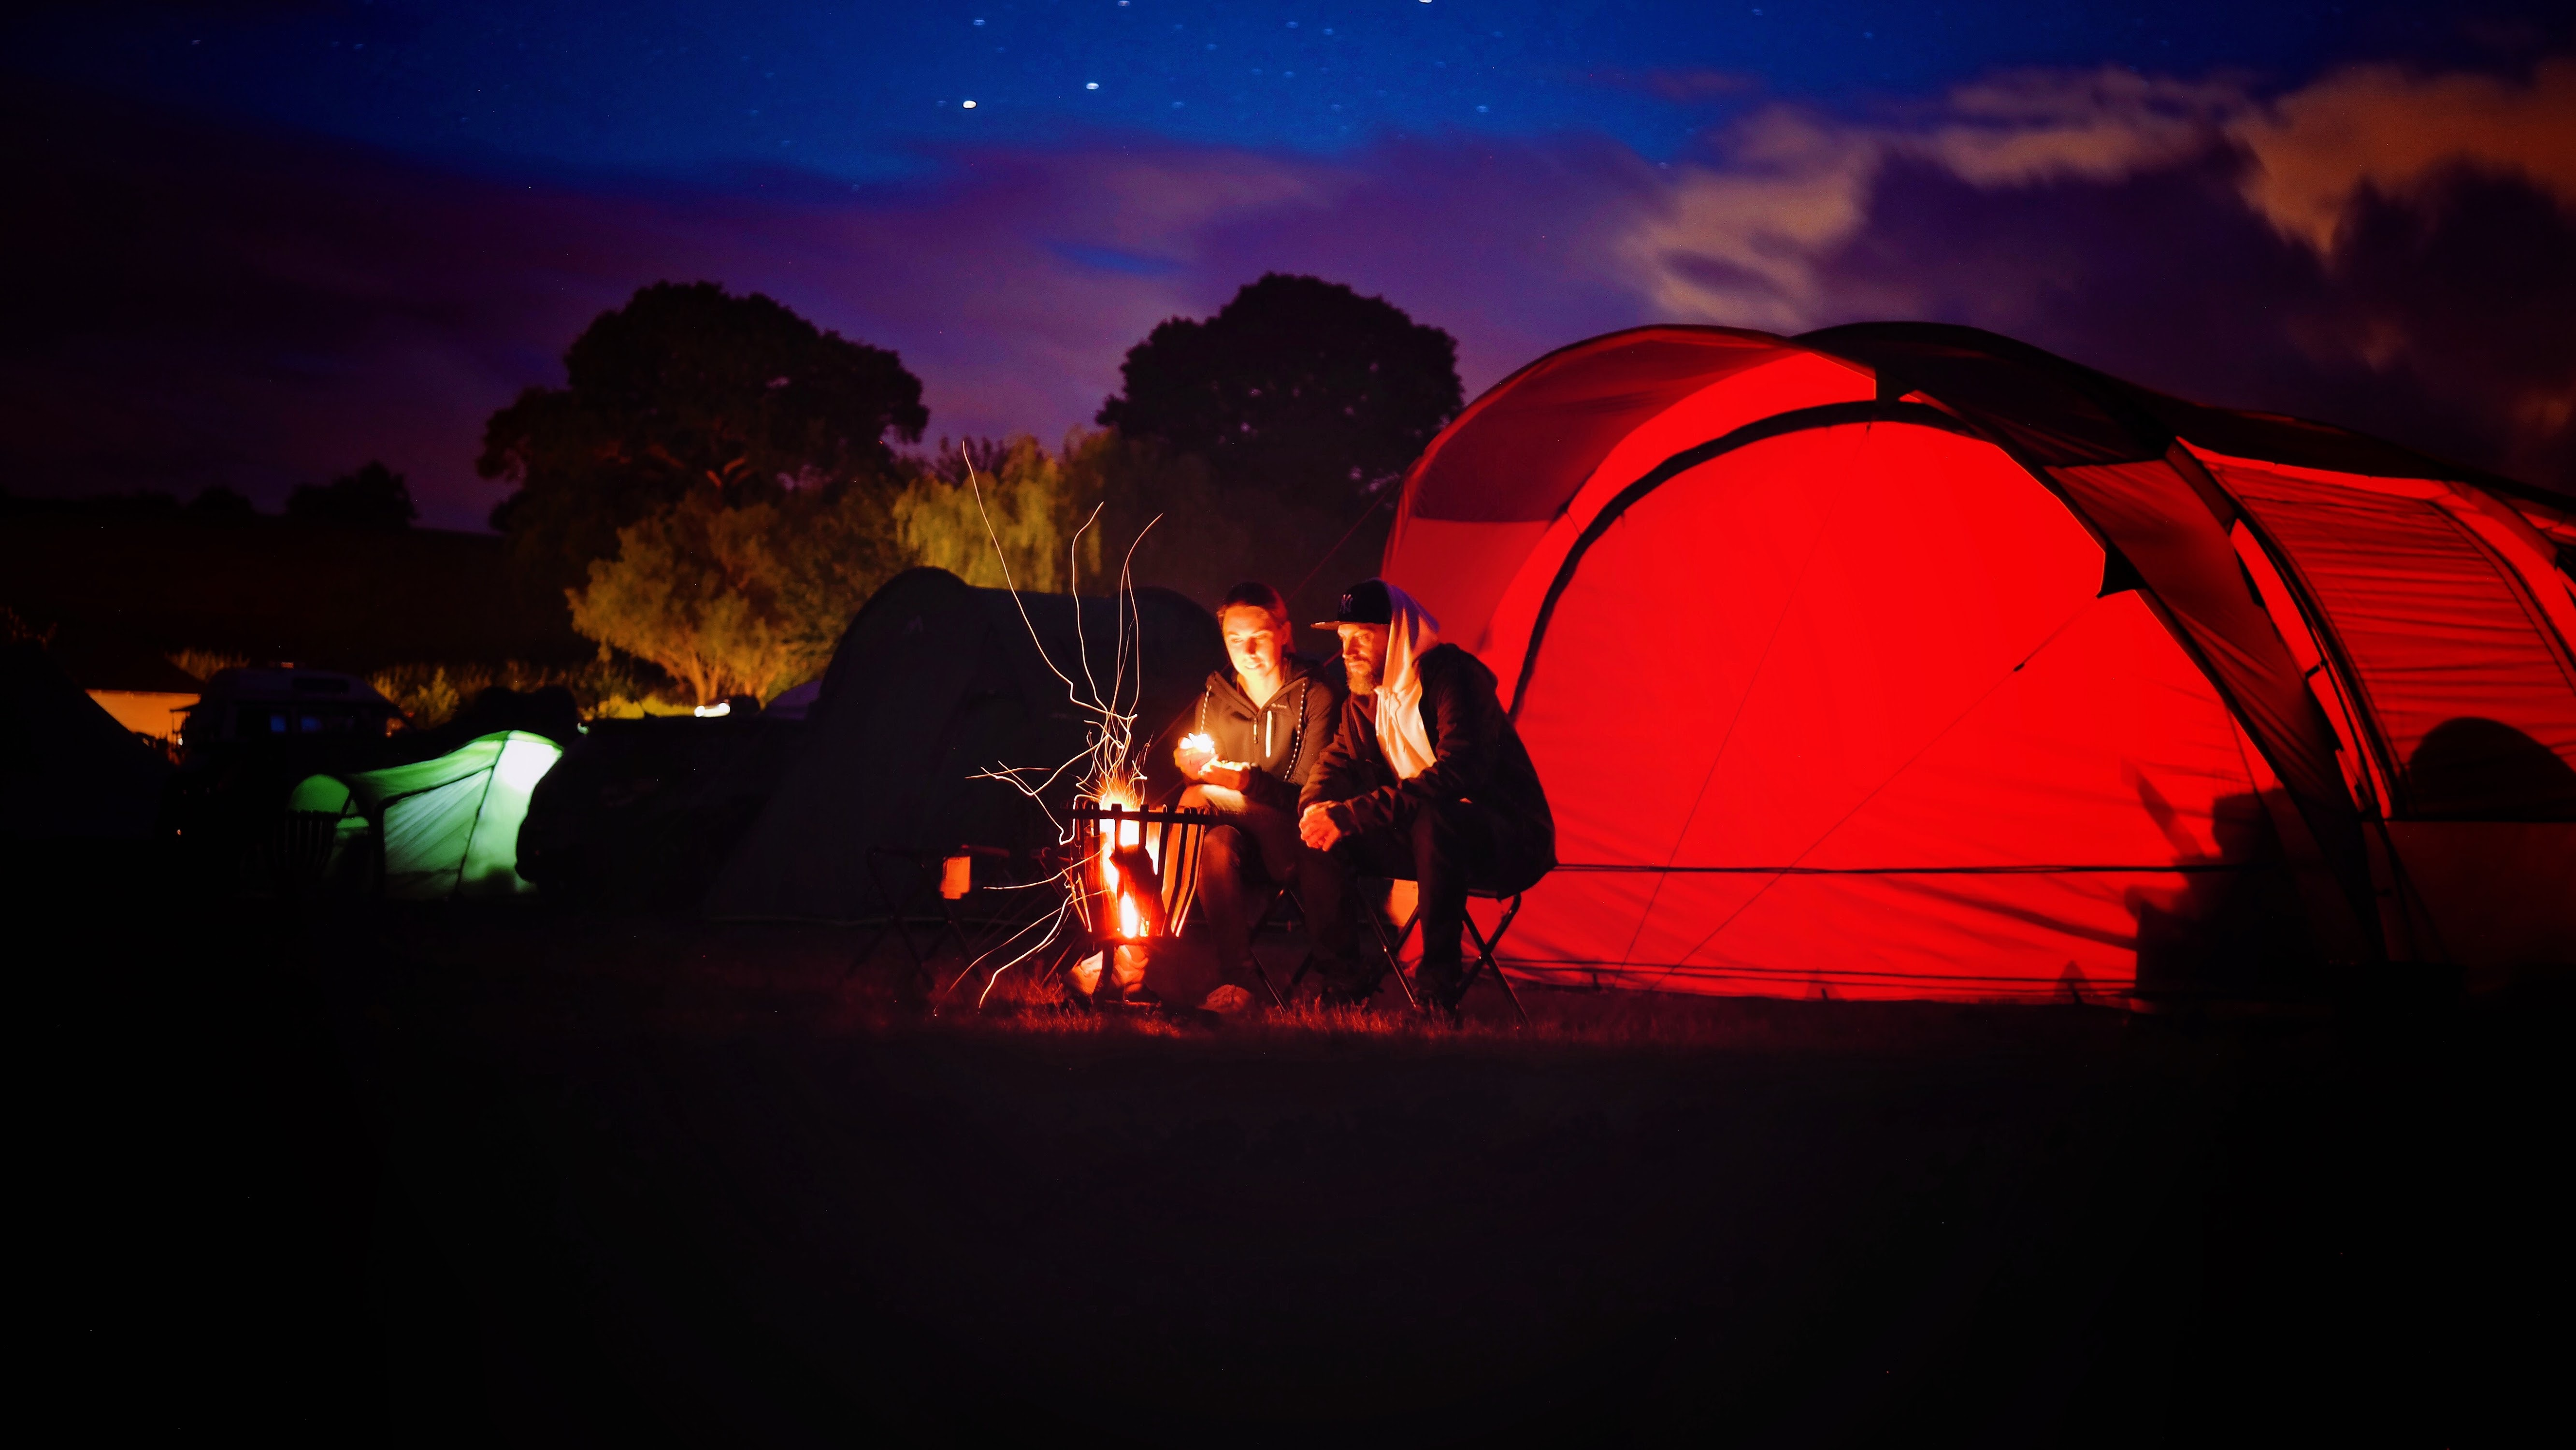 Man and Woman Sitting Beside Bonfire during Nigh Time, Adventure, Outdoors, Tent, Sunset, HQ Photo